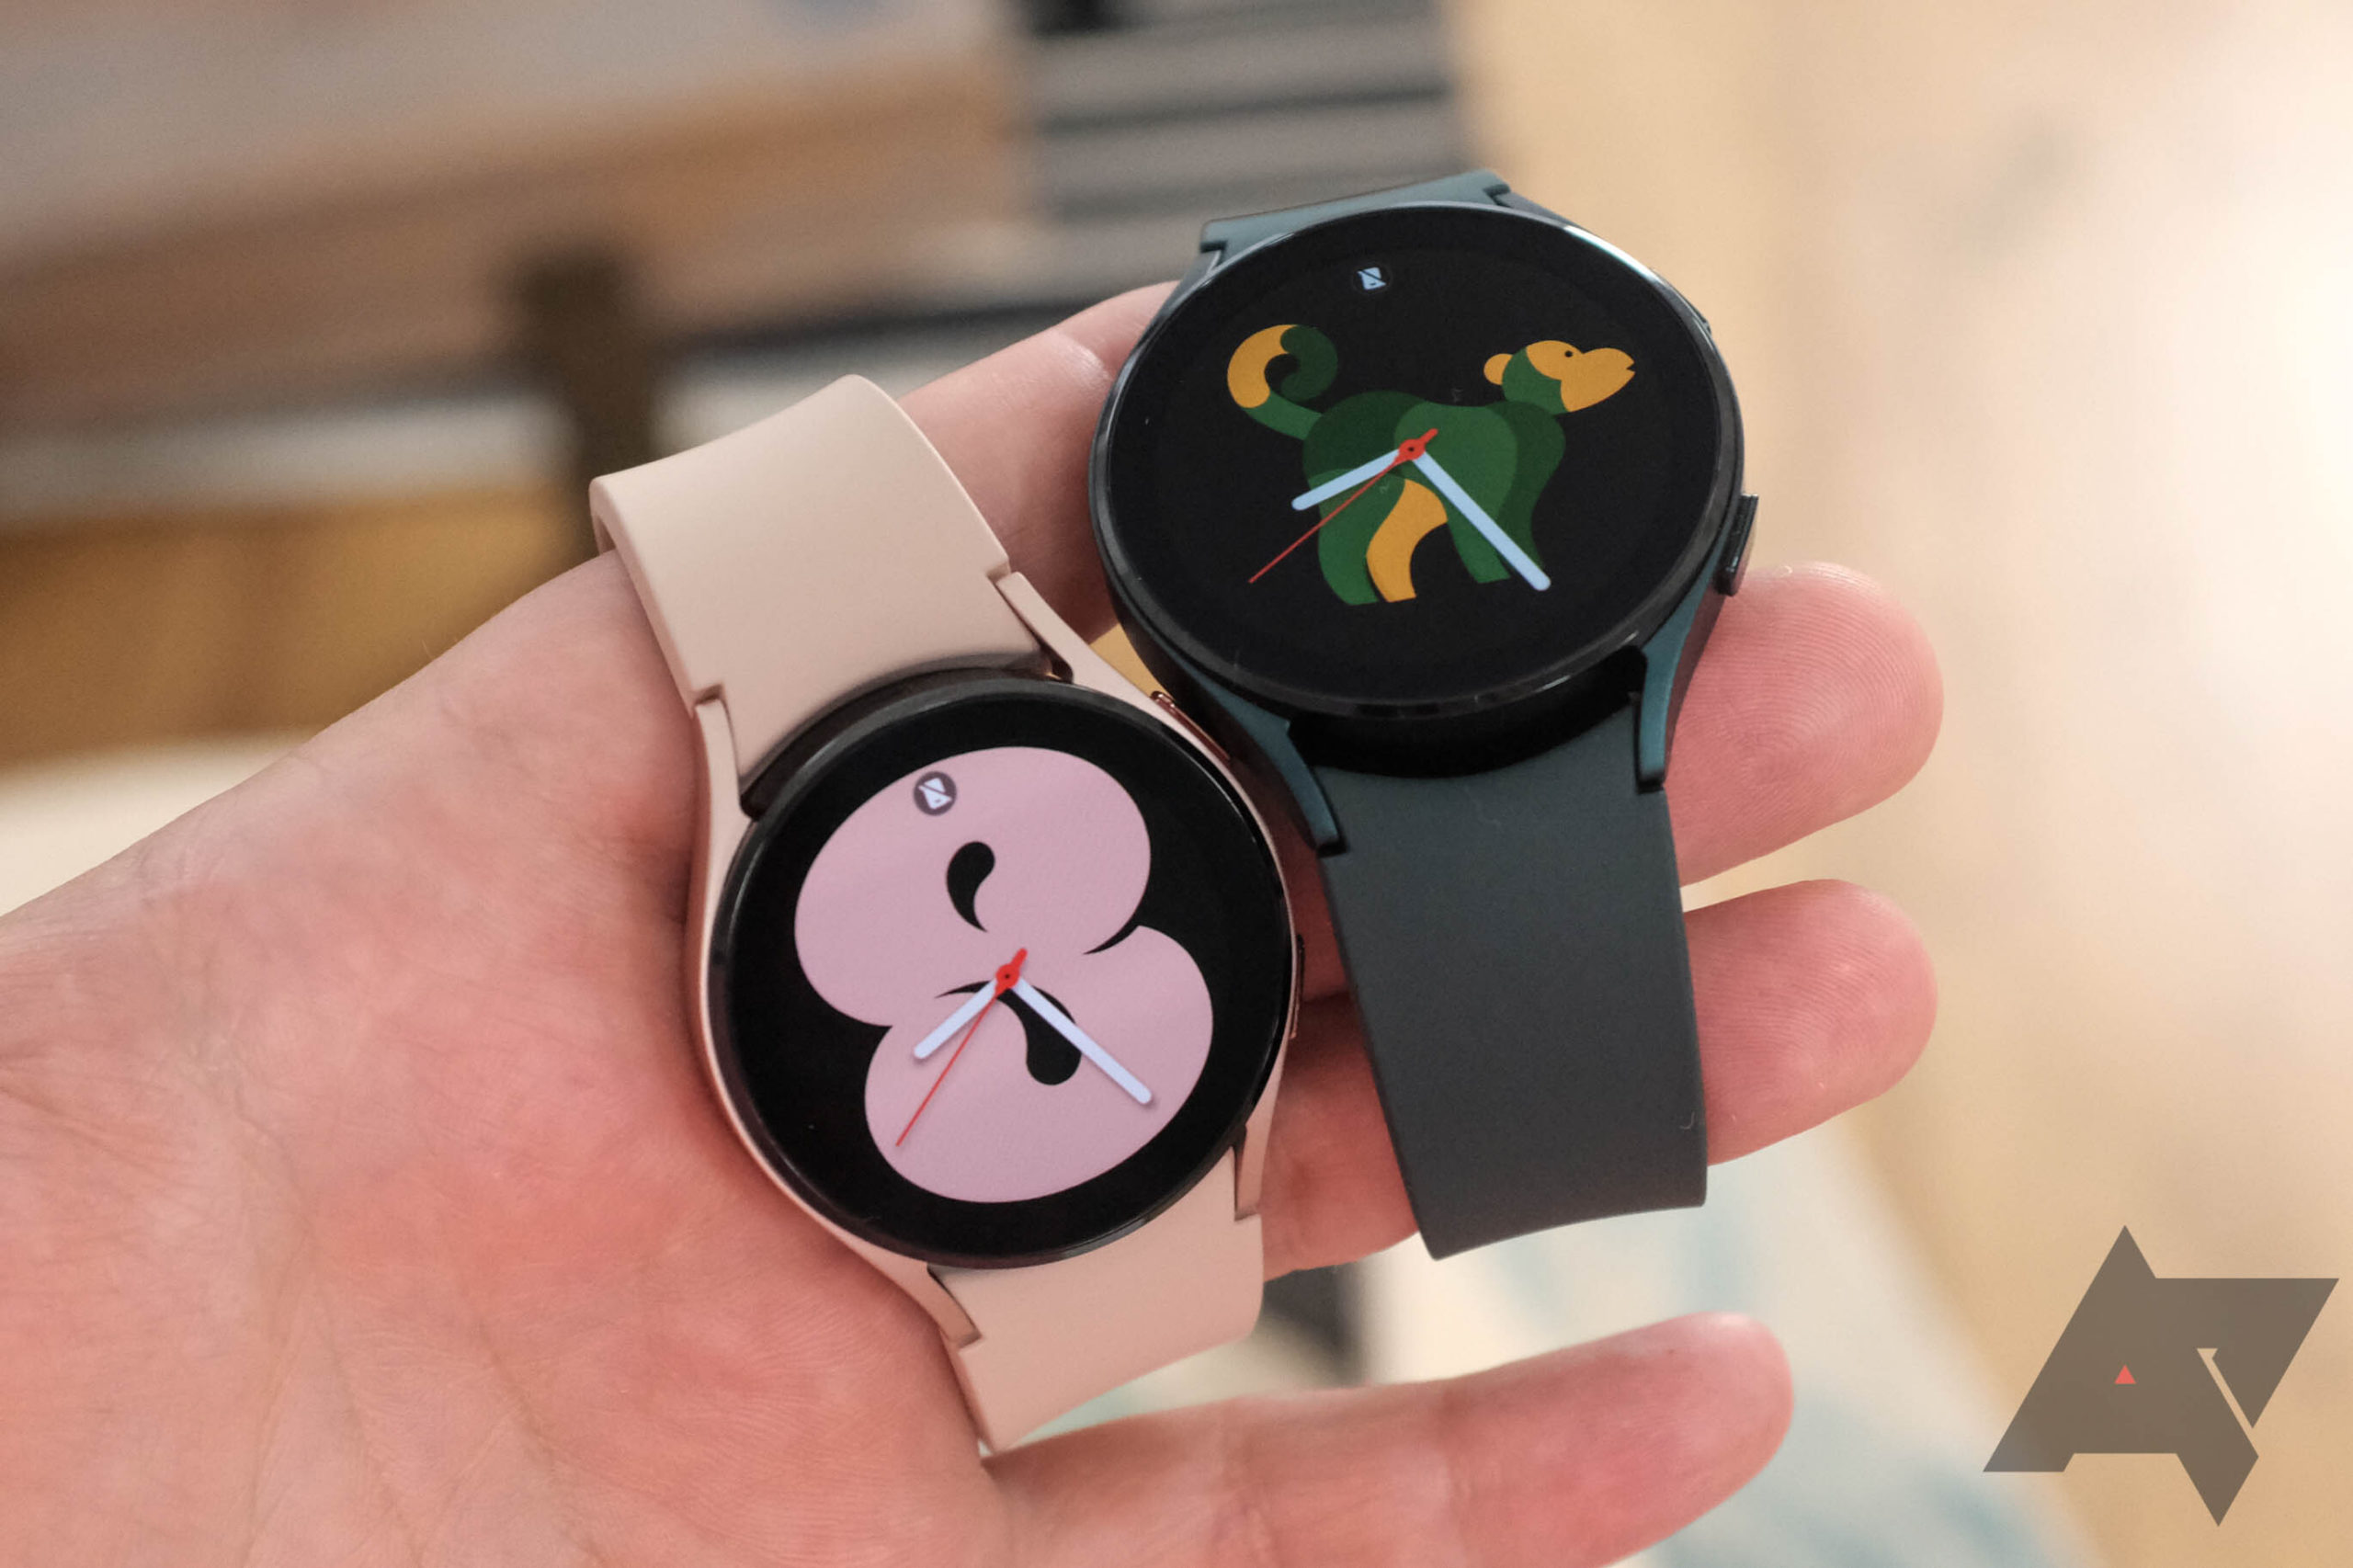 Samsung's Galaxy Watch4 is on sale for the first time since launch, complete with an extra wireless charger - Android Police